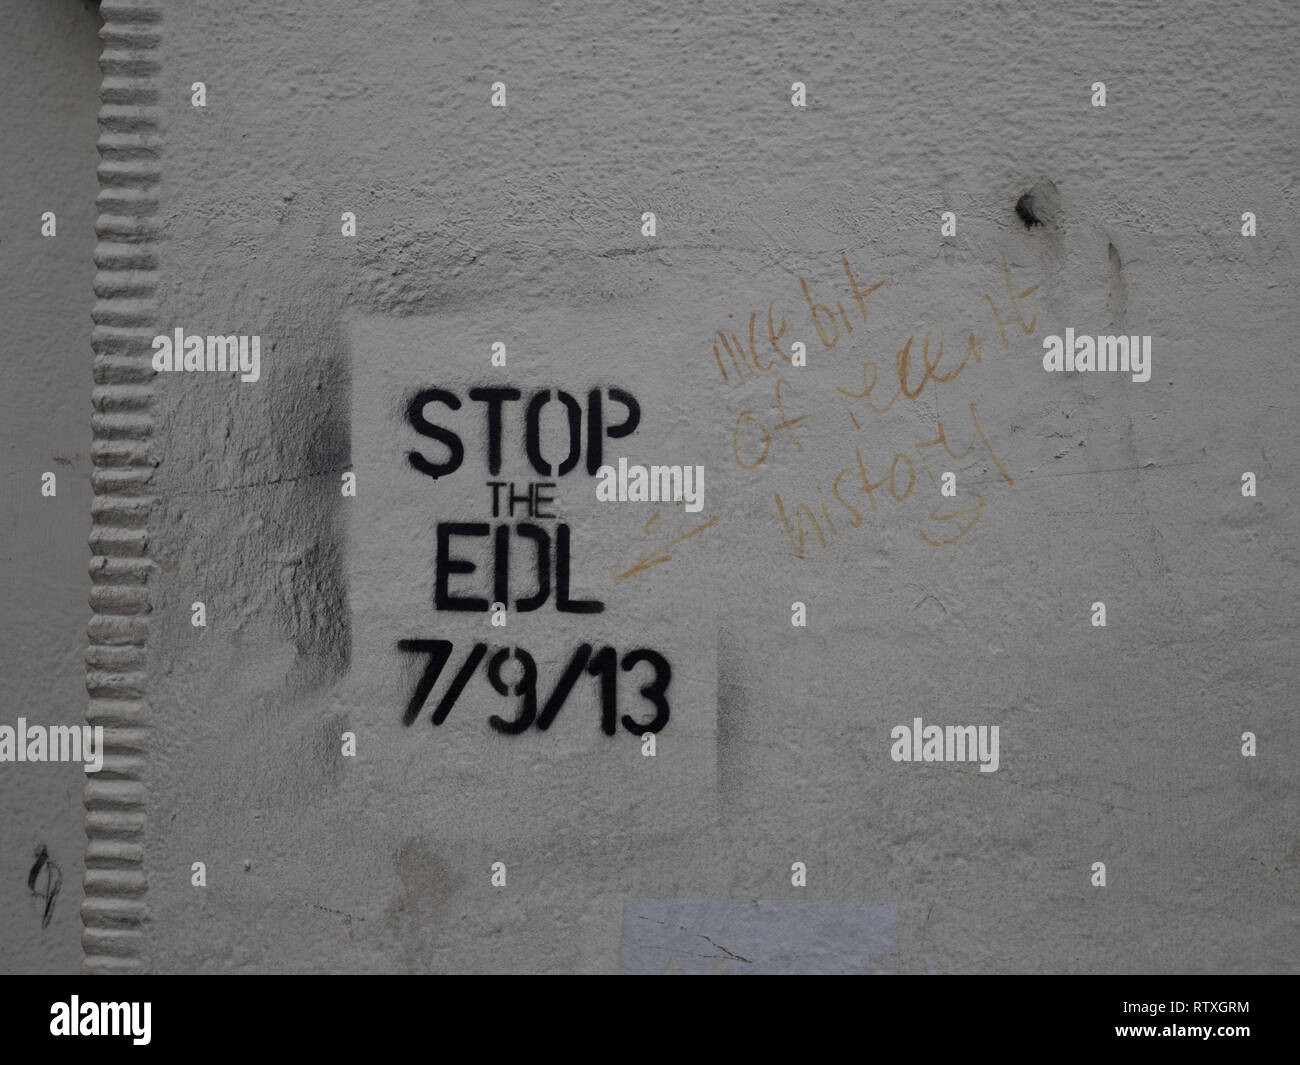 Stop the EDL graffiti on a wall in Aldgate, near Whitechapel in the East End of London referring to a controversial march by EDL in September 2013 - Stock Image